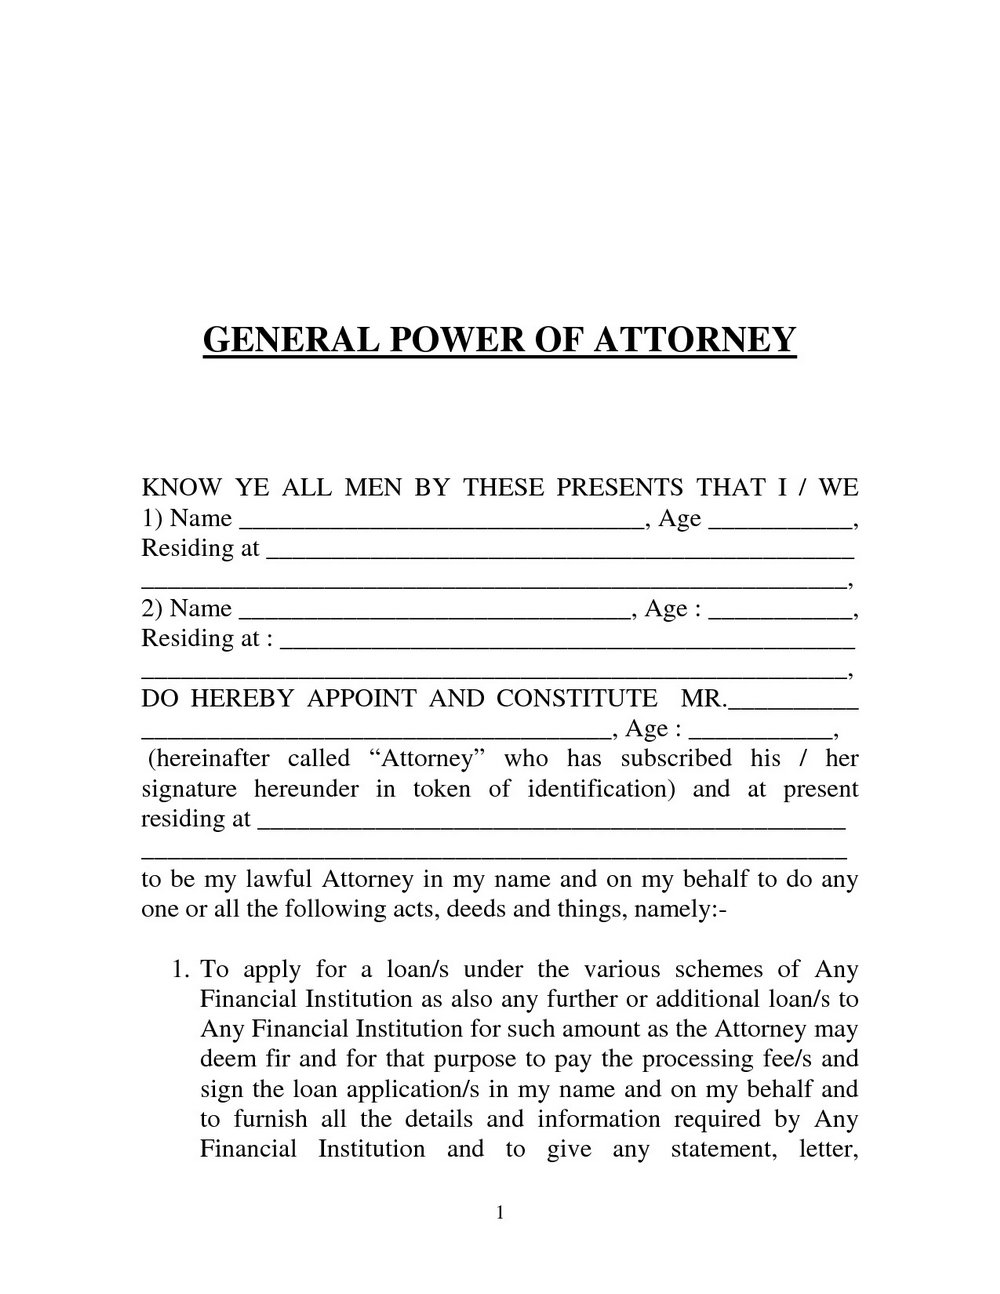 Power Of Attorney Template Pakistan